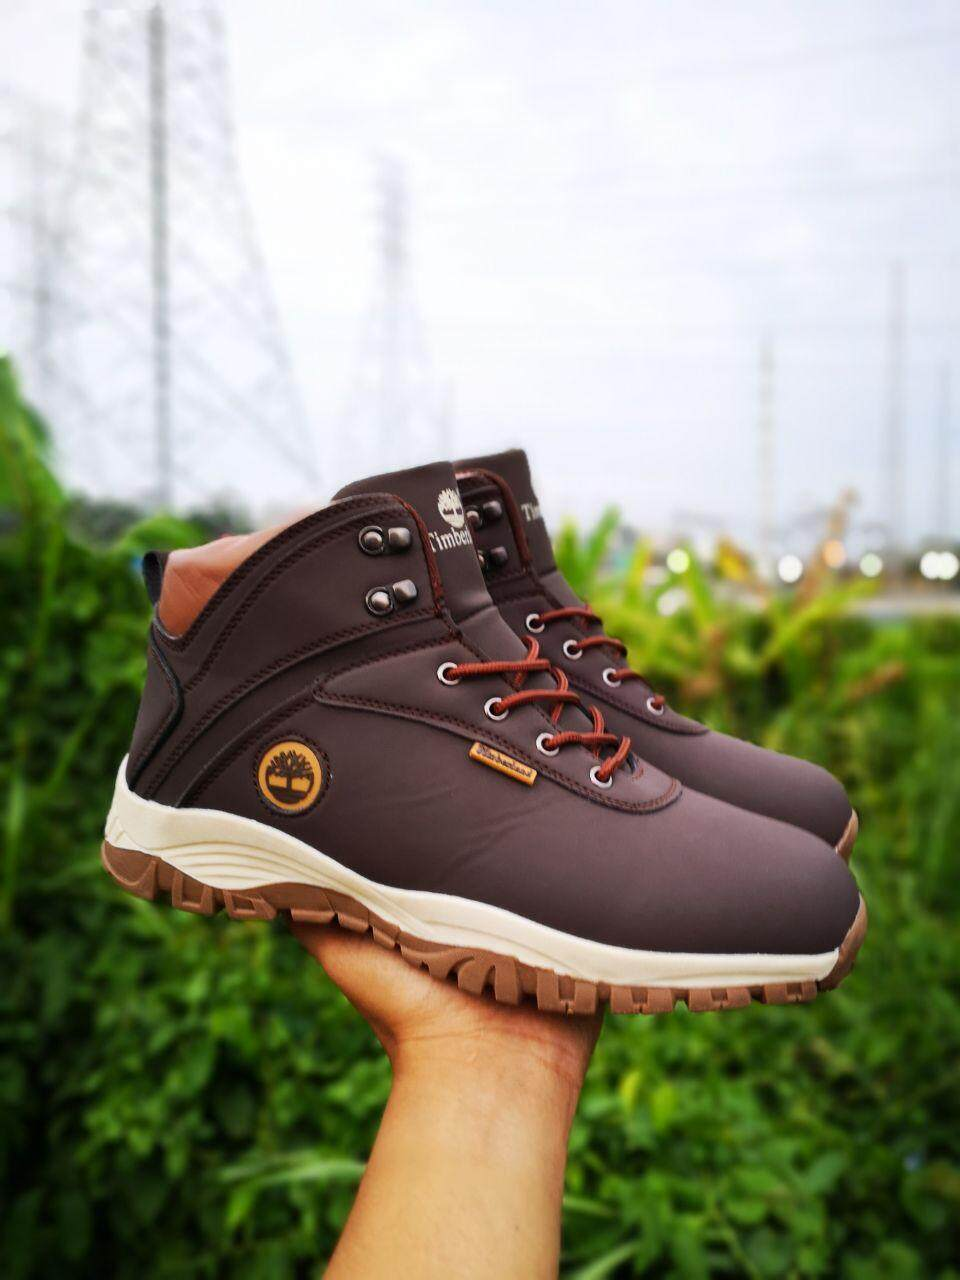 T.i.m.b.e.r.l.a.n.d Boot Hikers Shoes 2.0 Brown,black,dark Brown(free Shiping) By H2r Online Shop.